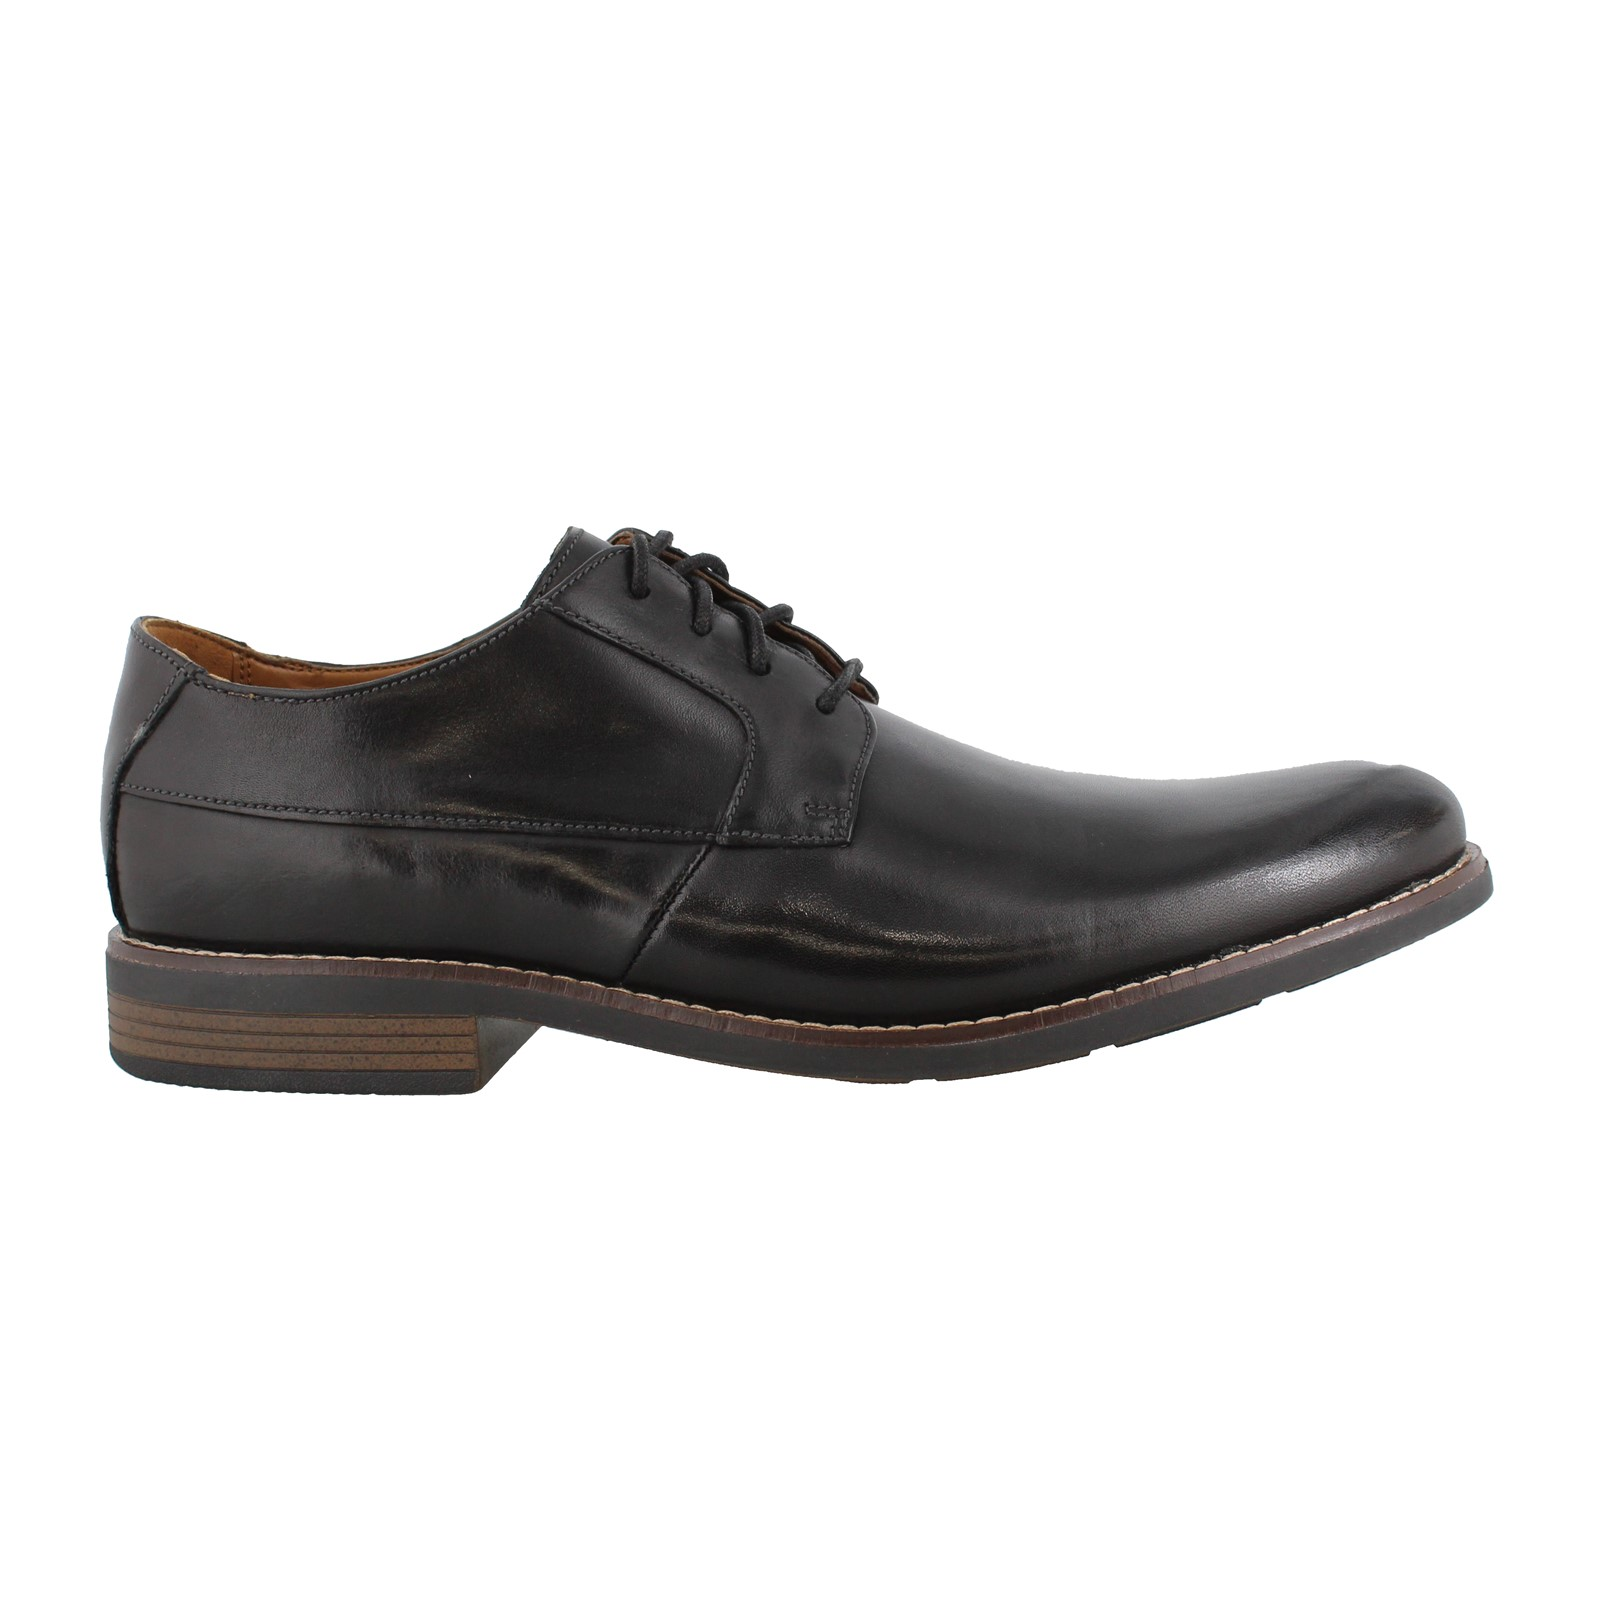 Men's Clarks, Becken Plain Toe Oxford